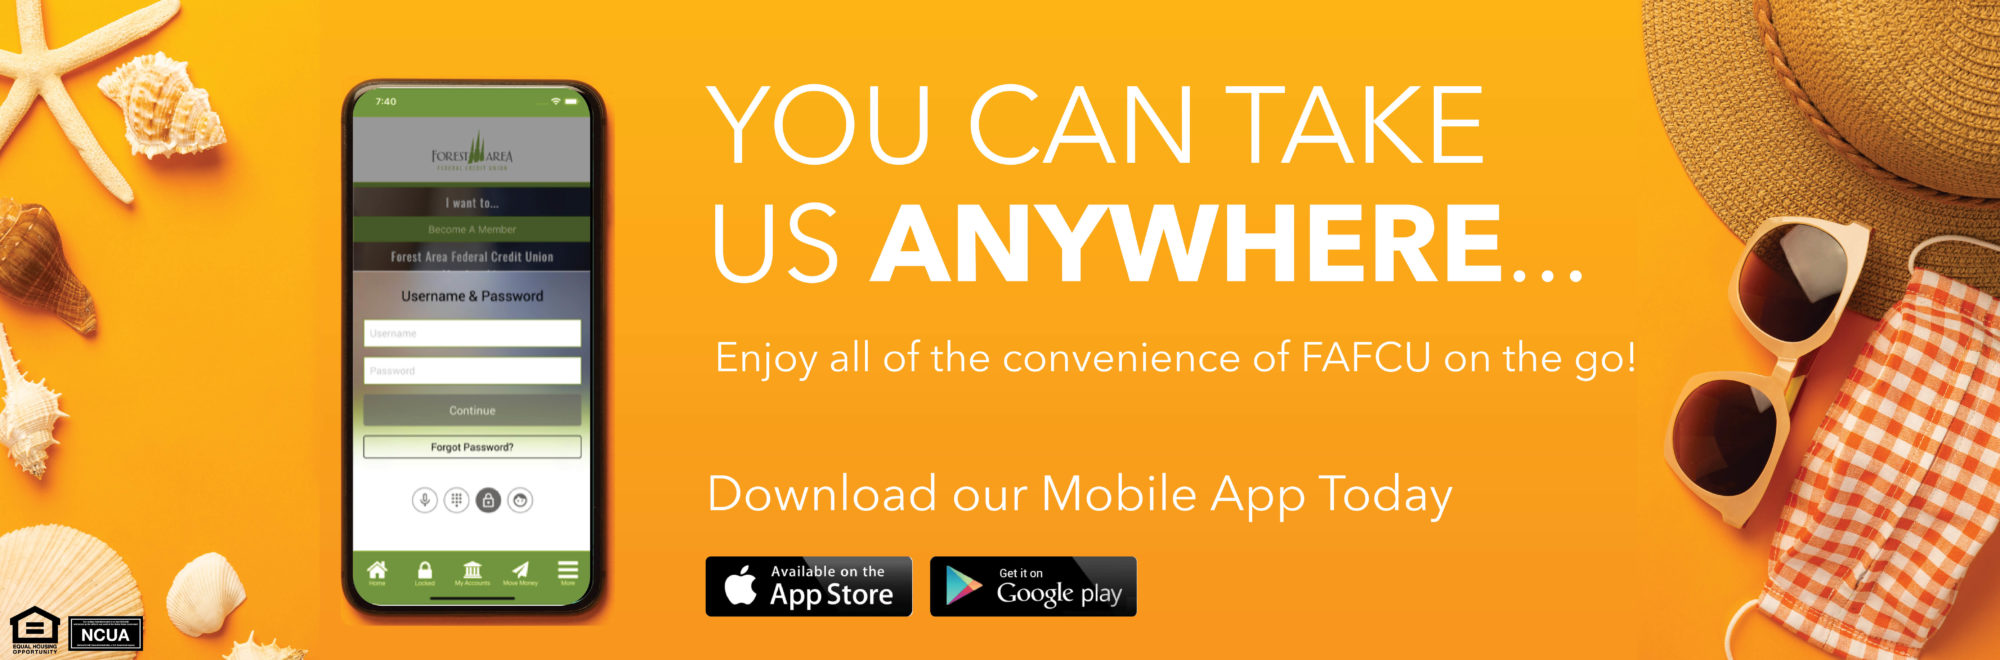 Enjoy all the conveniences of FAFCU on the go with online banking, mobile banking, and remote deposit caption and more